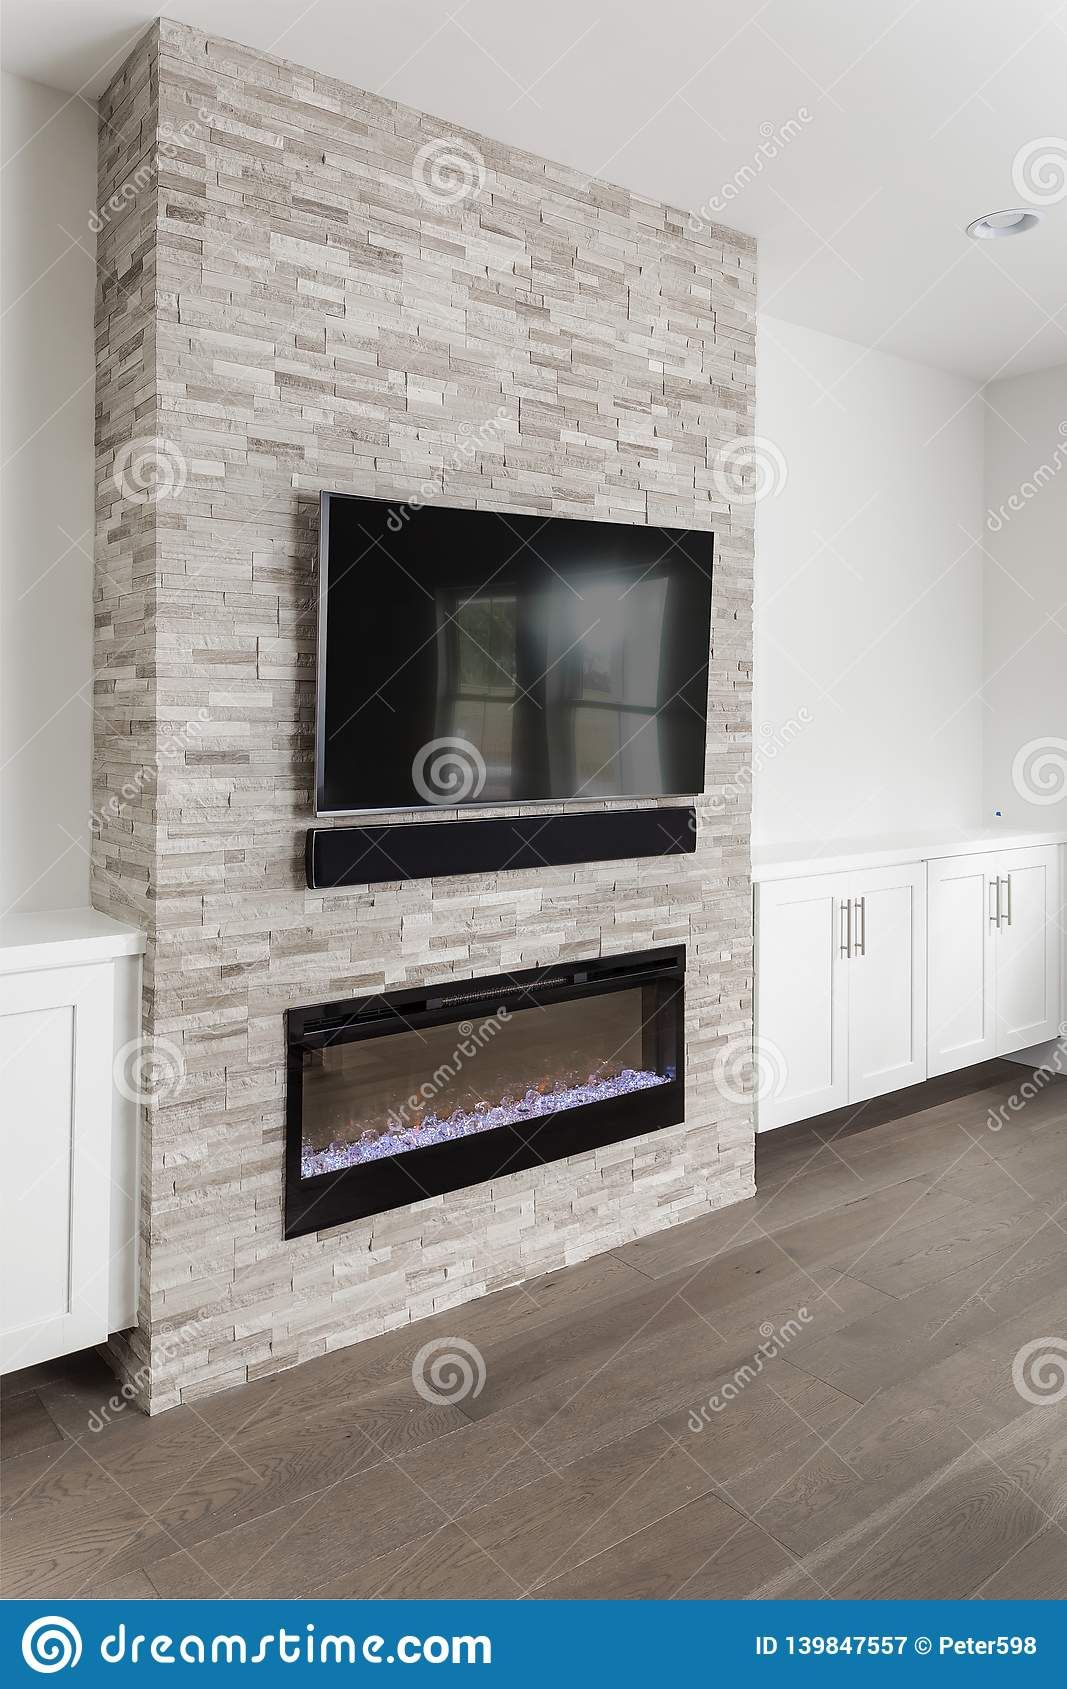 White Cabinets Around Fireplace 2021 in 2020   Basement fireplace, Fireplace, Family room fireplace